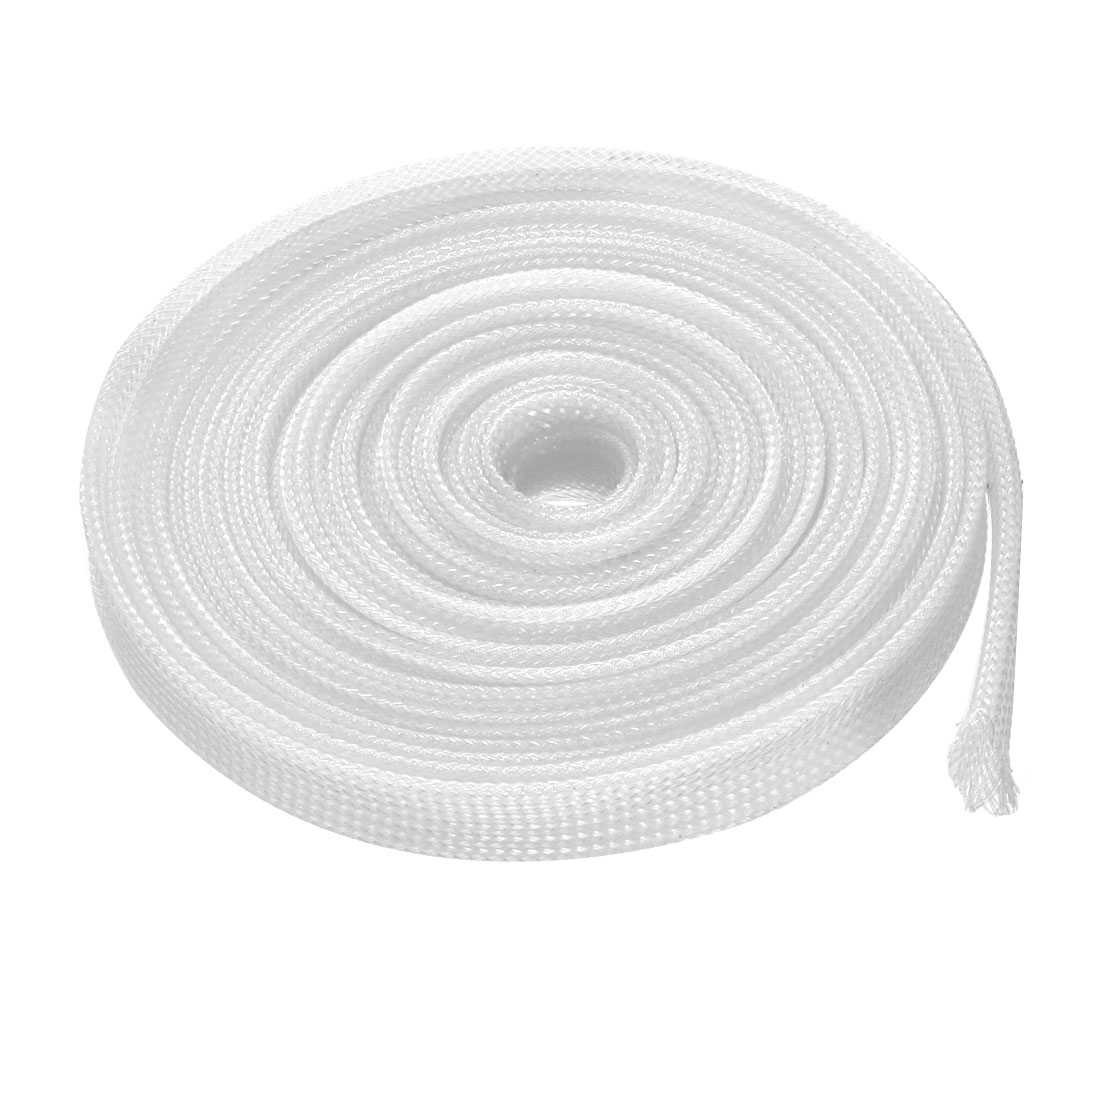 6mm Flat Dia Tight Braided PET Expandable Sleeving Cable Wrap Sheath Clear 5M